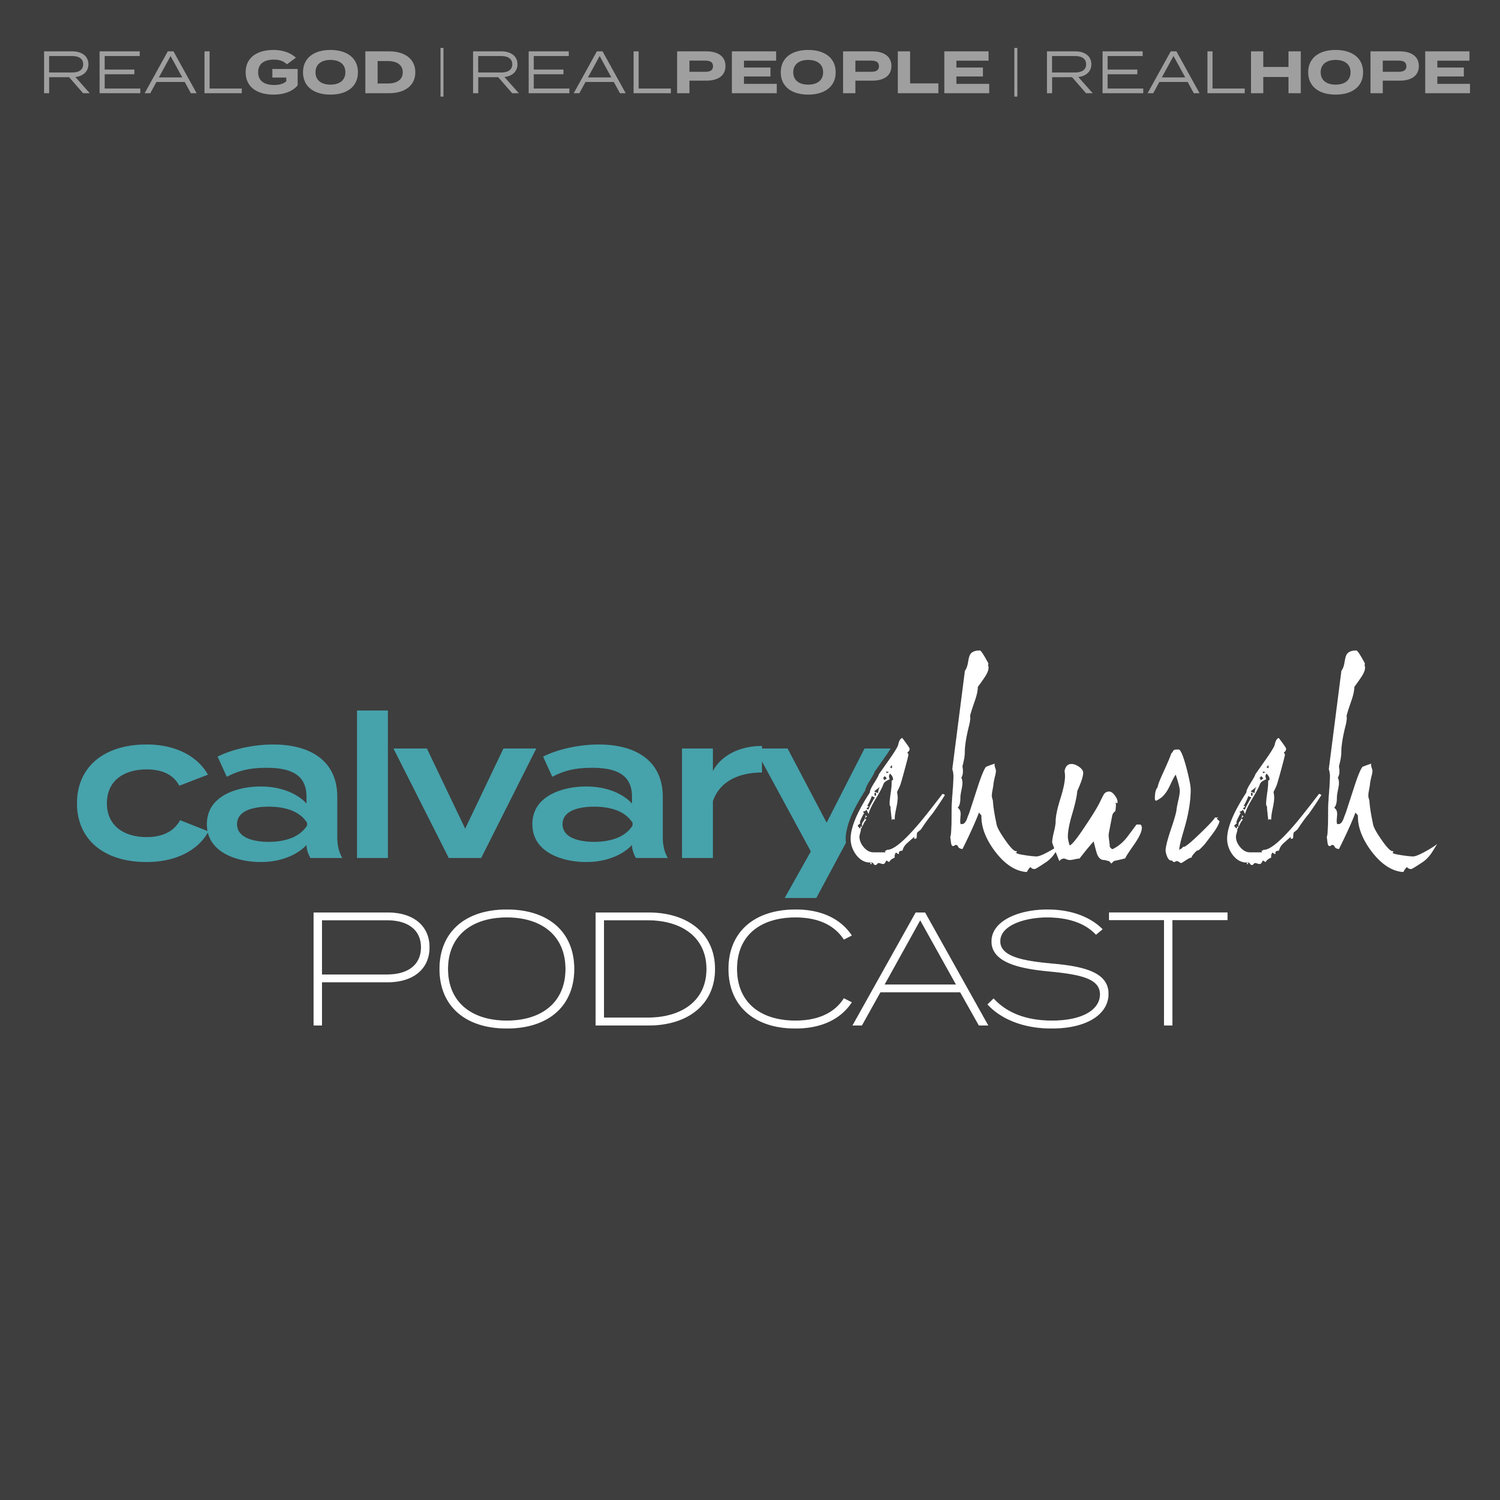 Calvary Church Podcast